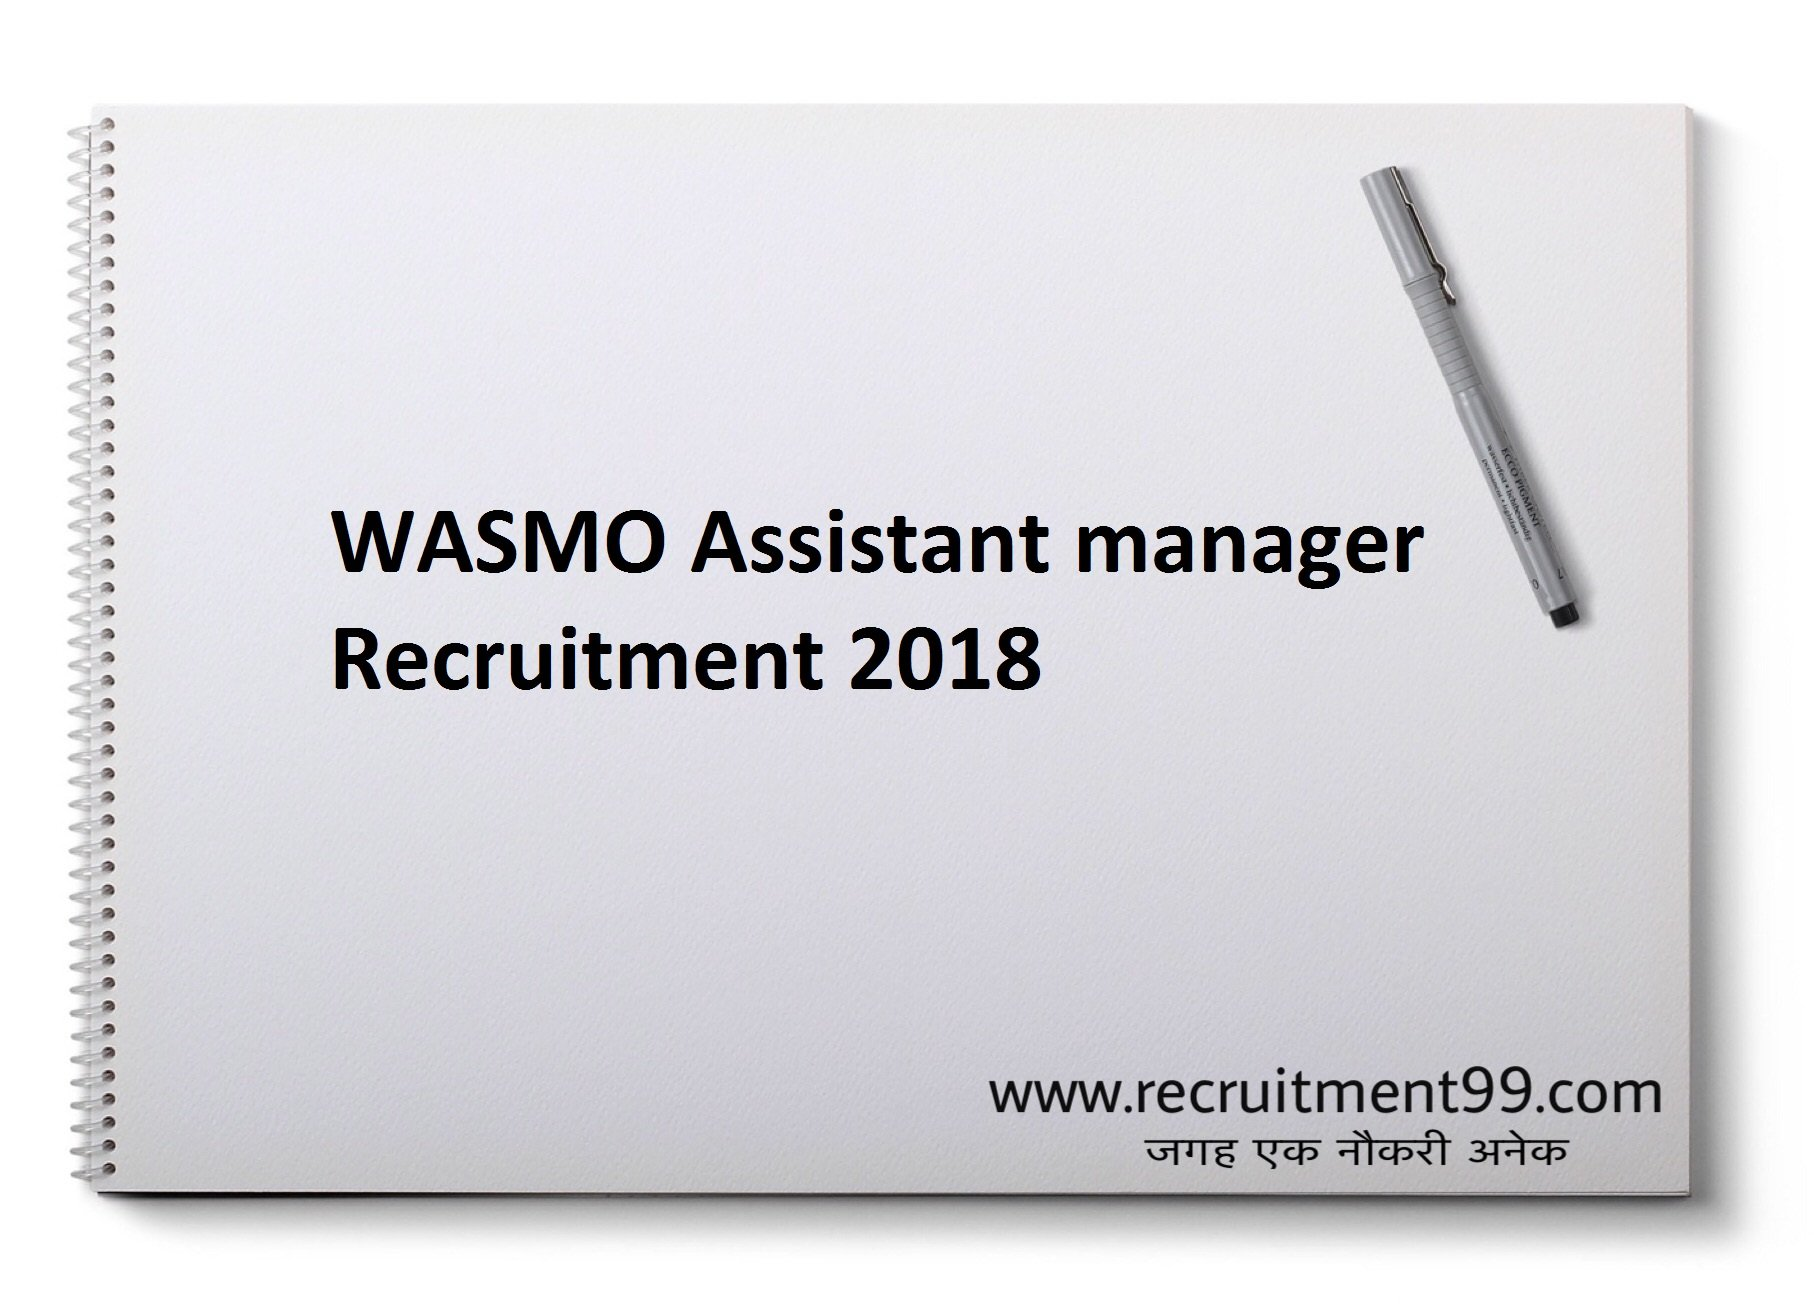 WASMO Assistant manager Recruitment 2018